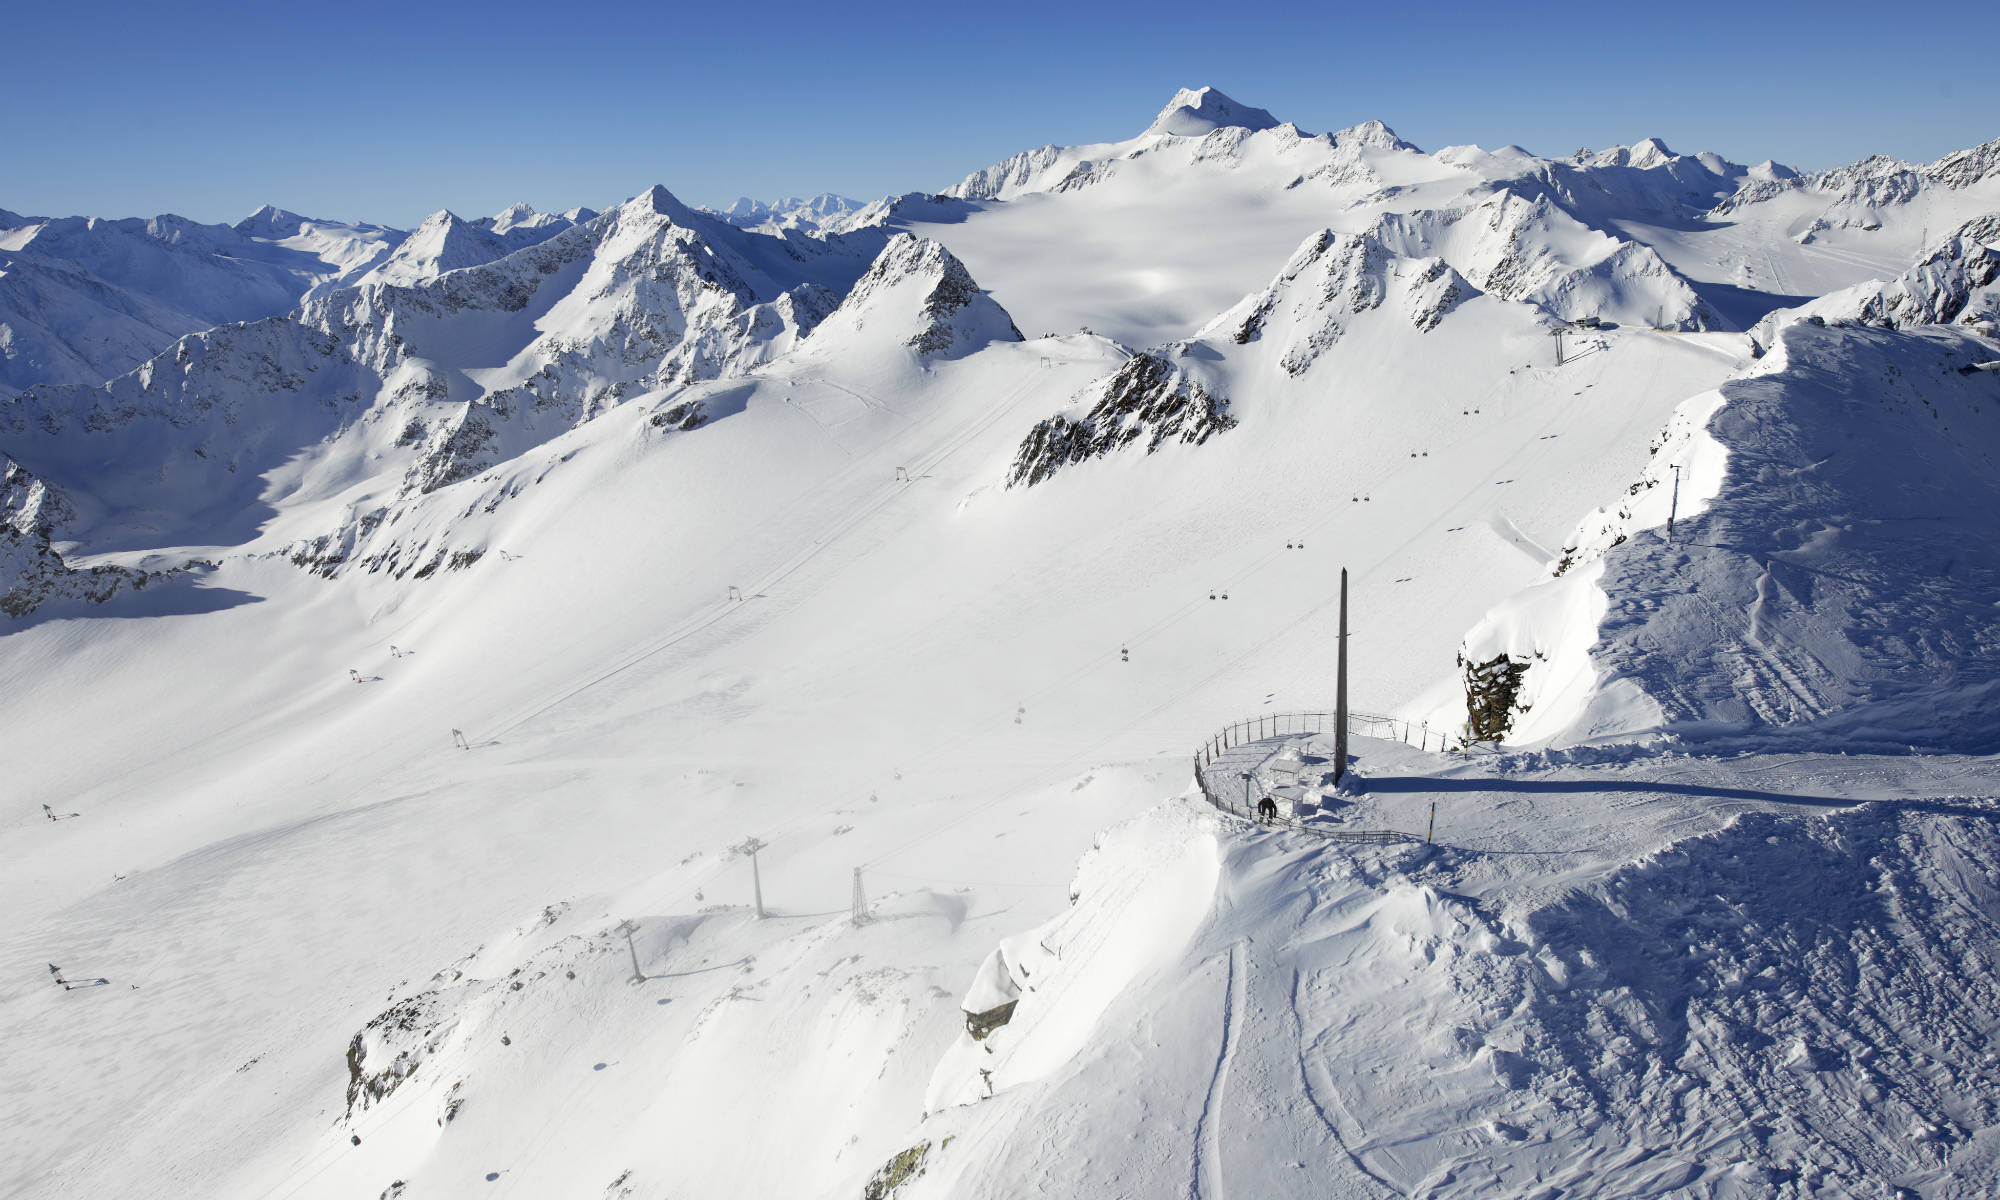 High mountain view of the pistes at Sölden.